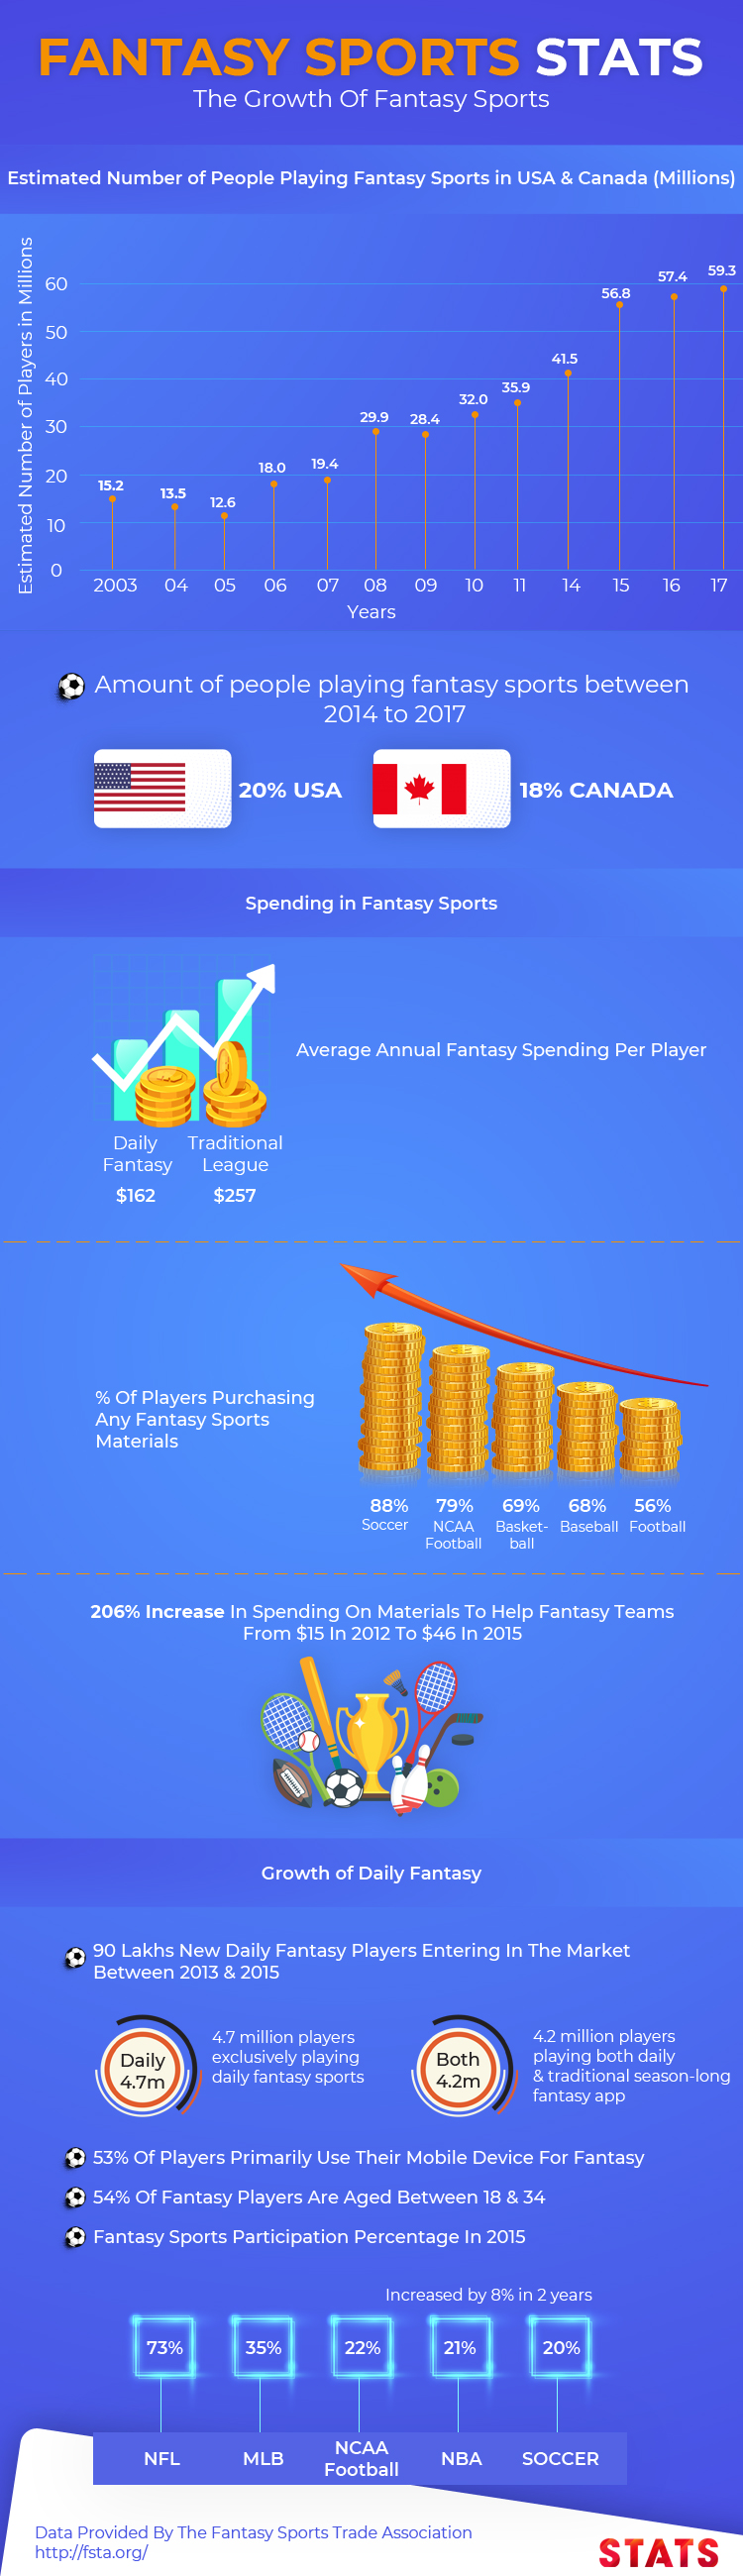 fantasy sports app development market overview